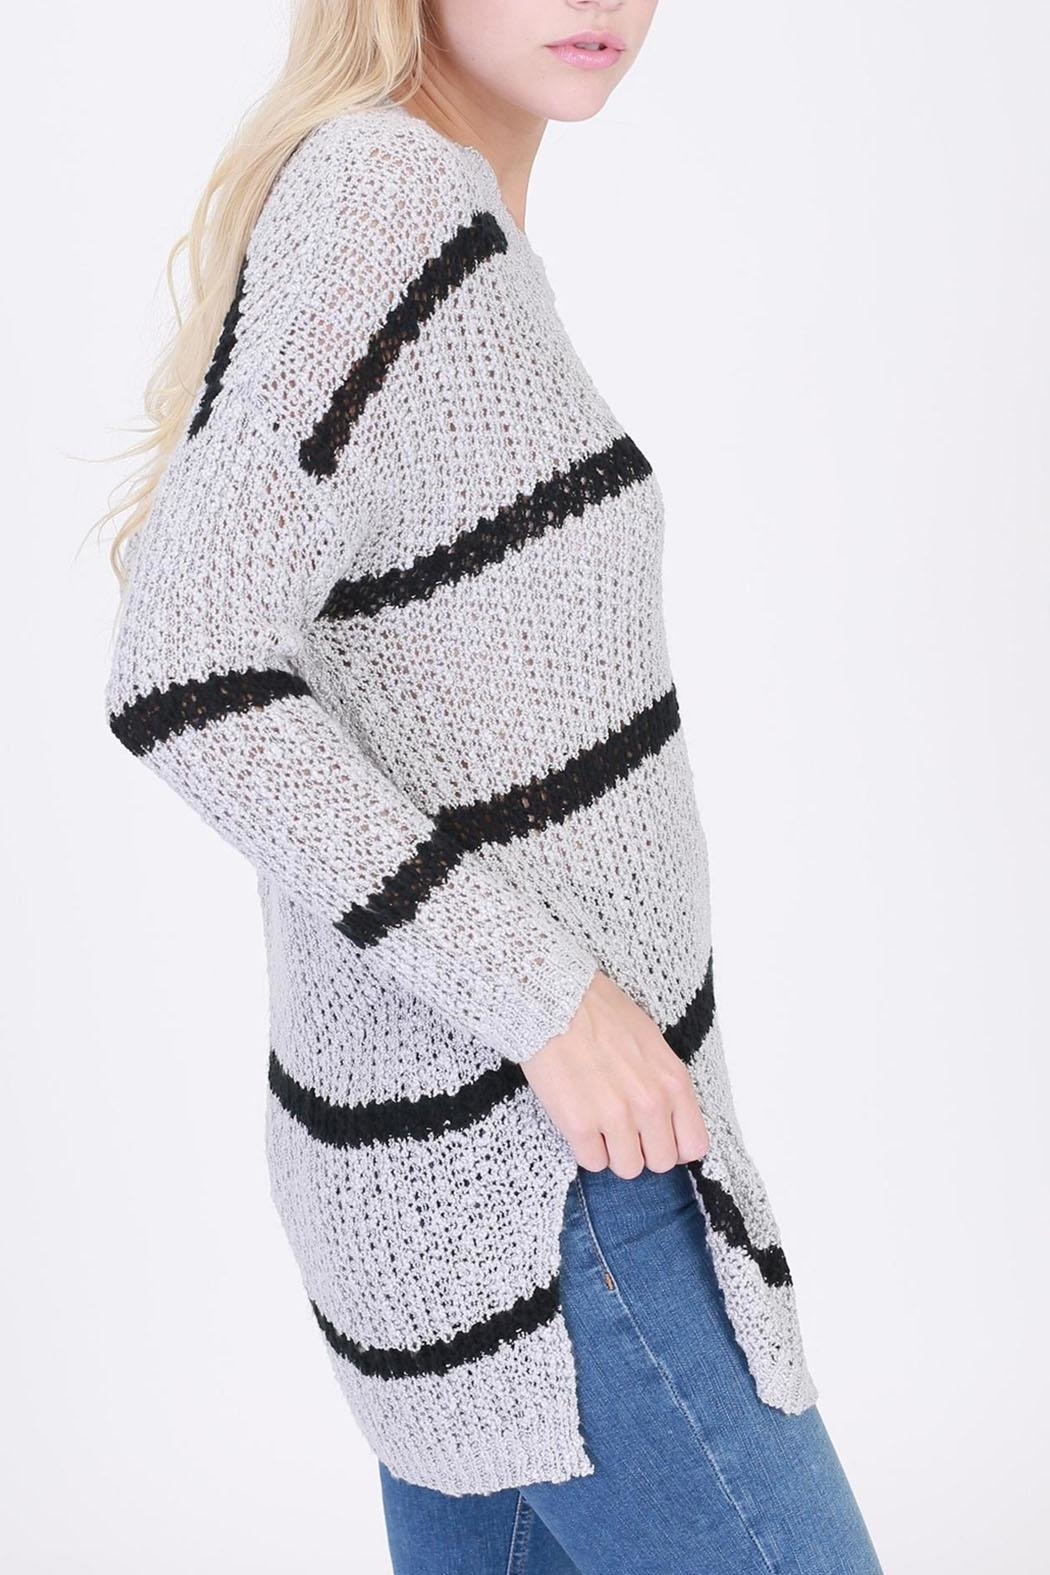 HYFVE Striped Pocketed Sweater - Front Full Image